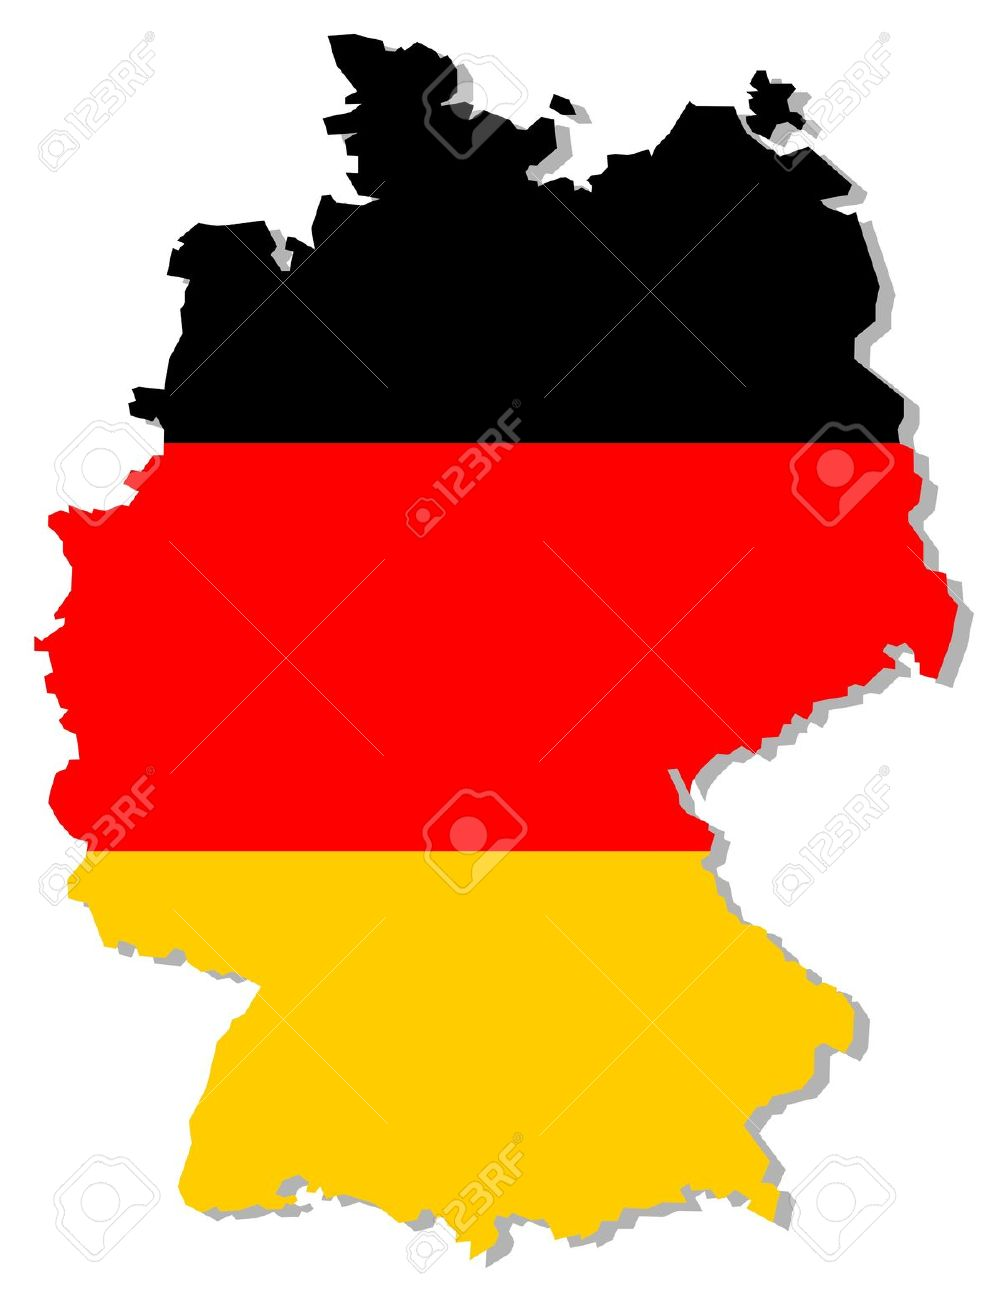 Germany - Partner